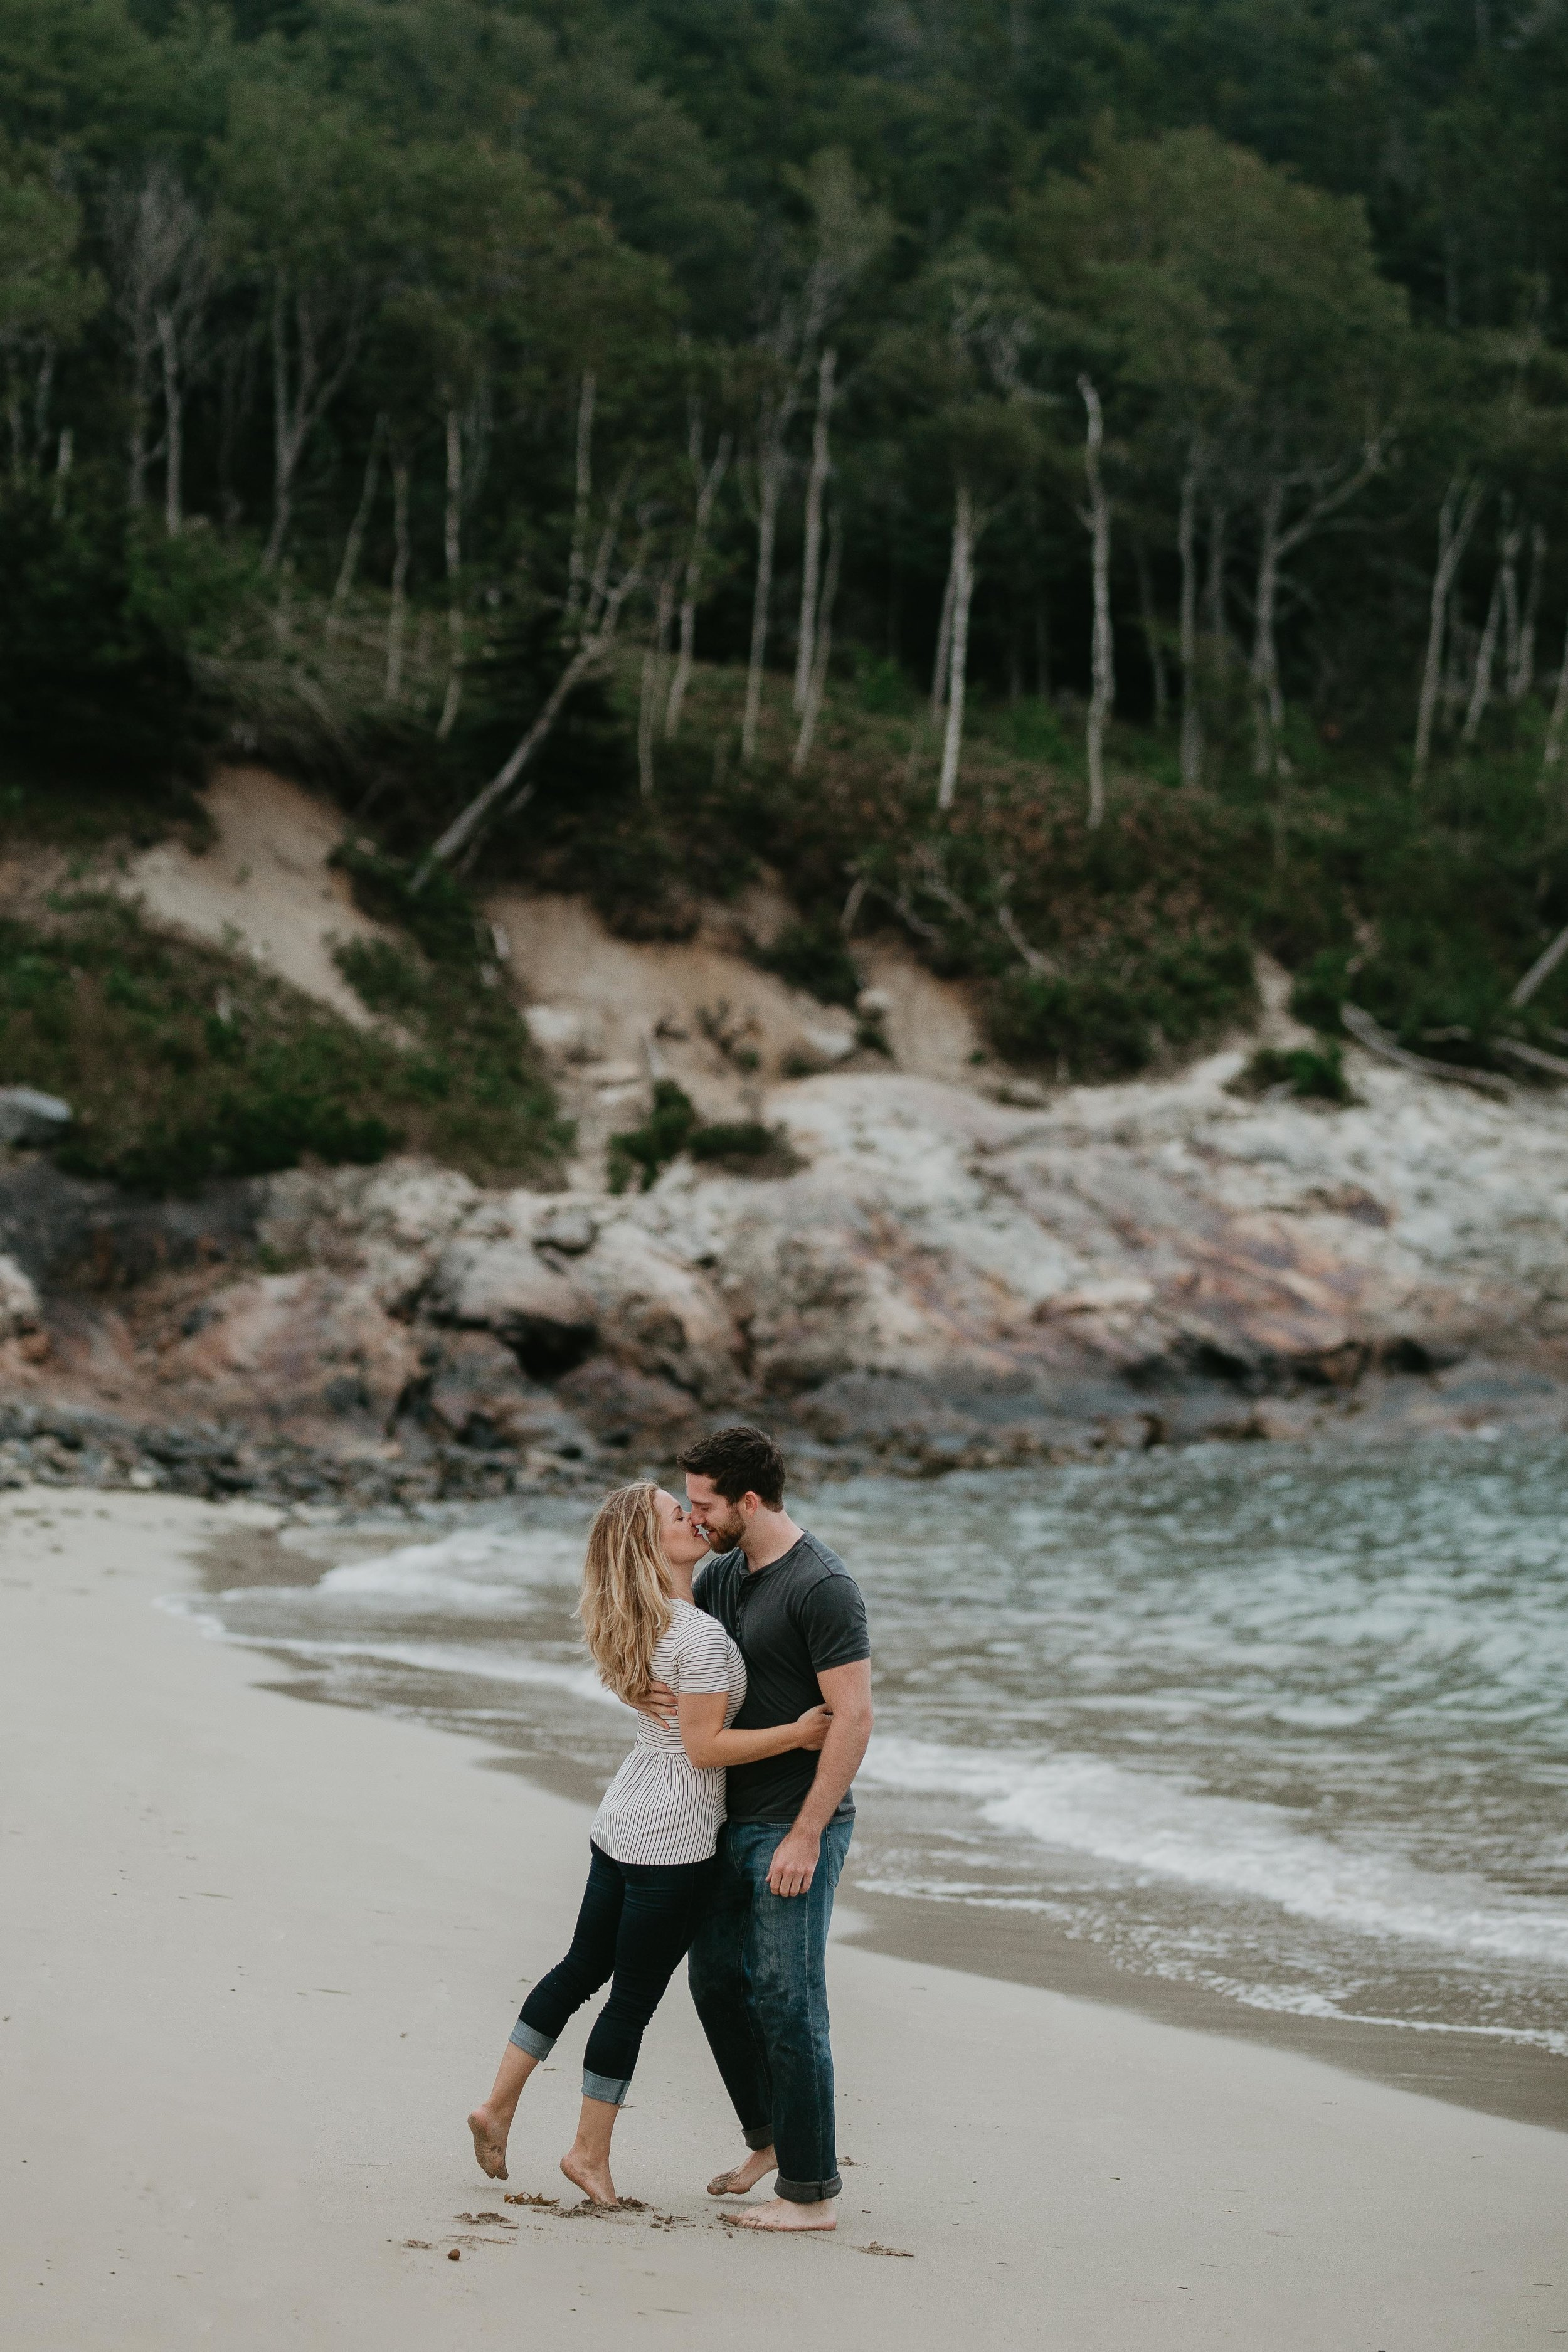 nicole-daacke-photography-acadia-national-park-adventurous-engagement-session-photos-otter-cliffs-forests-coastline-sand-beach-adventure-session-bar-harbor-mt-desert-island-elopement-fall-bass-harbor-lighthouse-wedding-maine-landscape-photographer-5.jpg